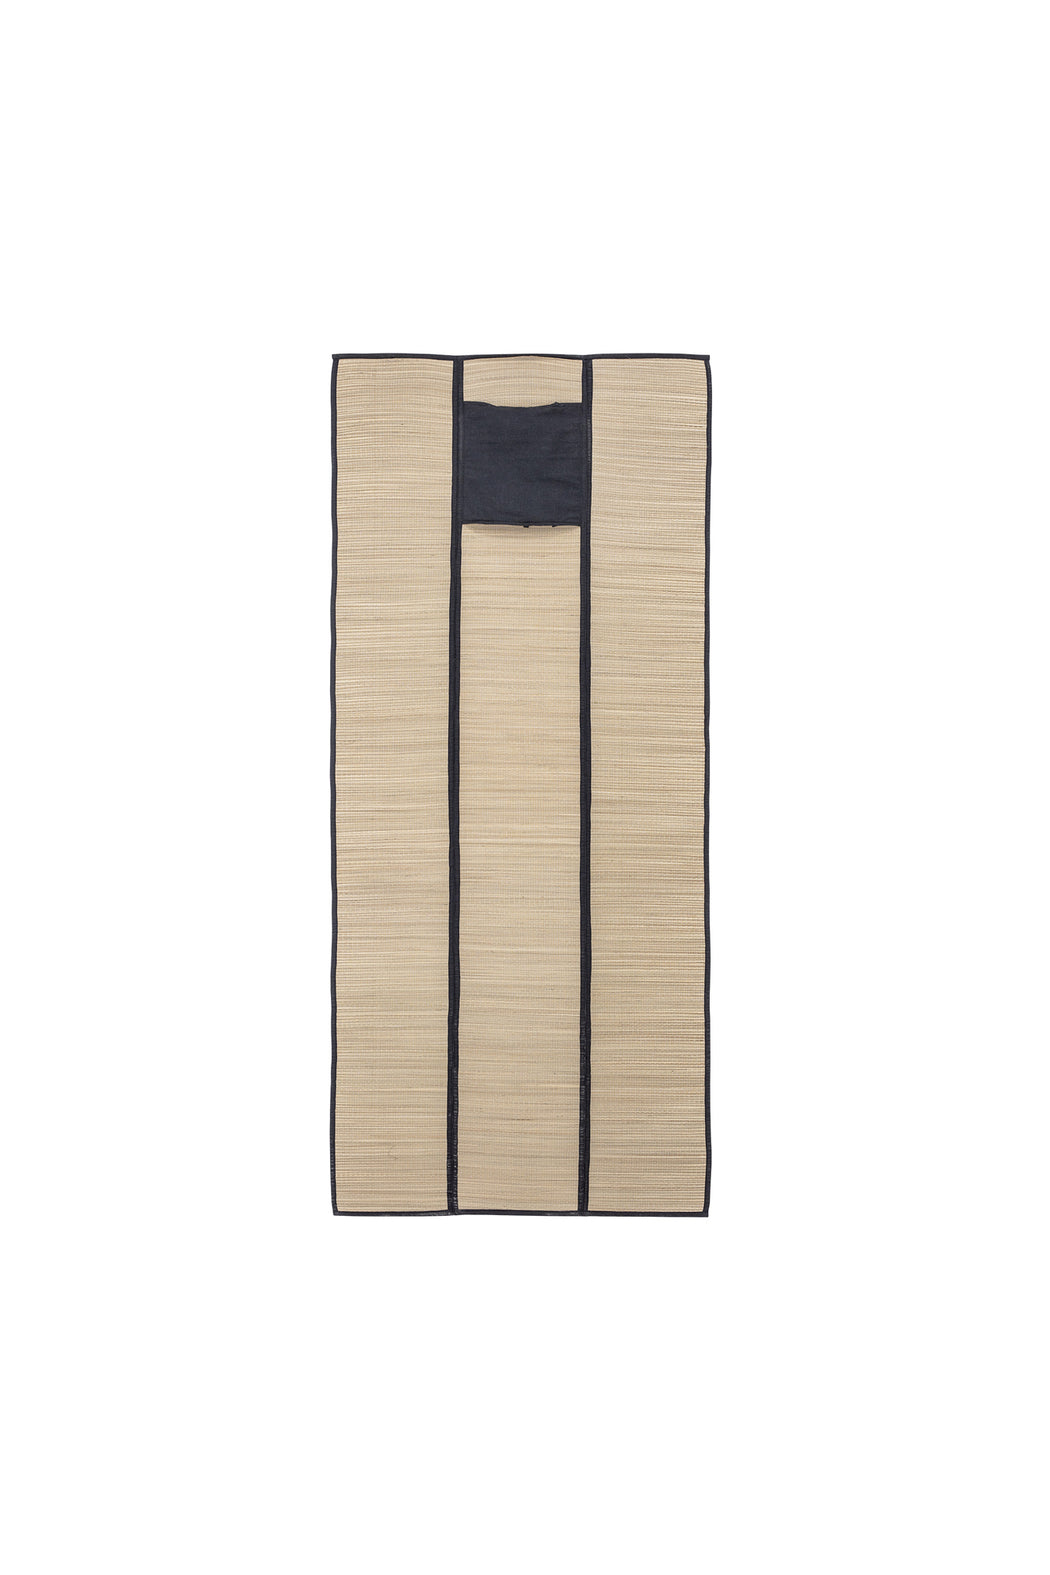 Seagrass Beach Mat Black